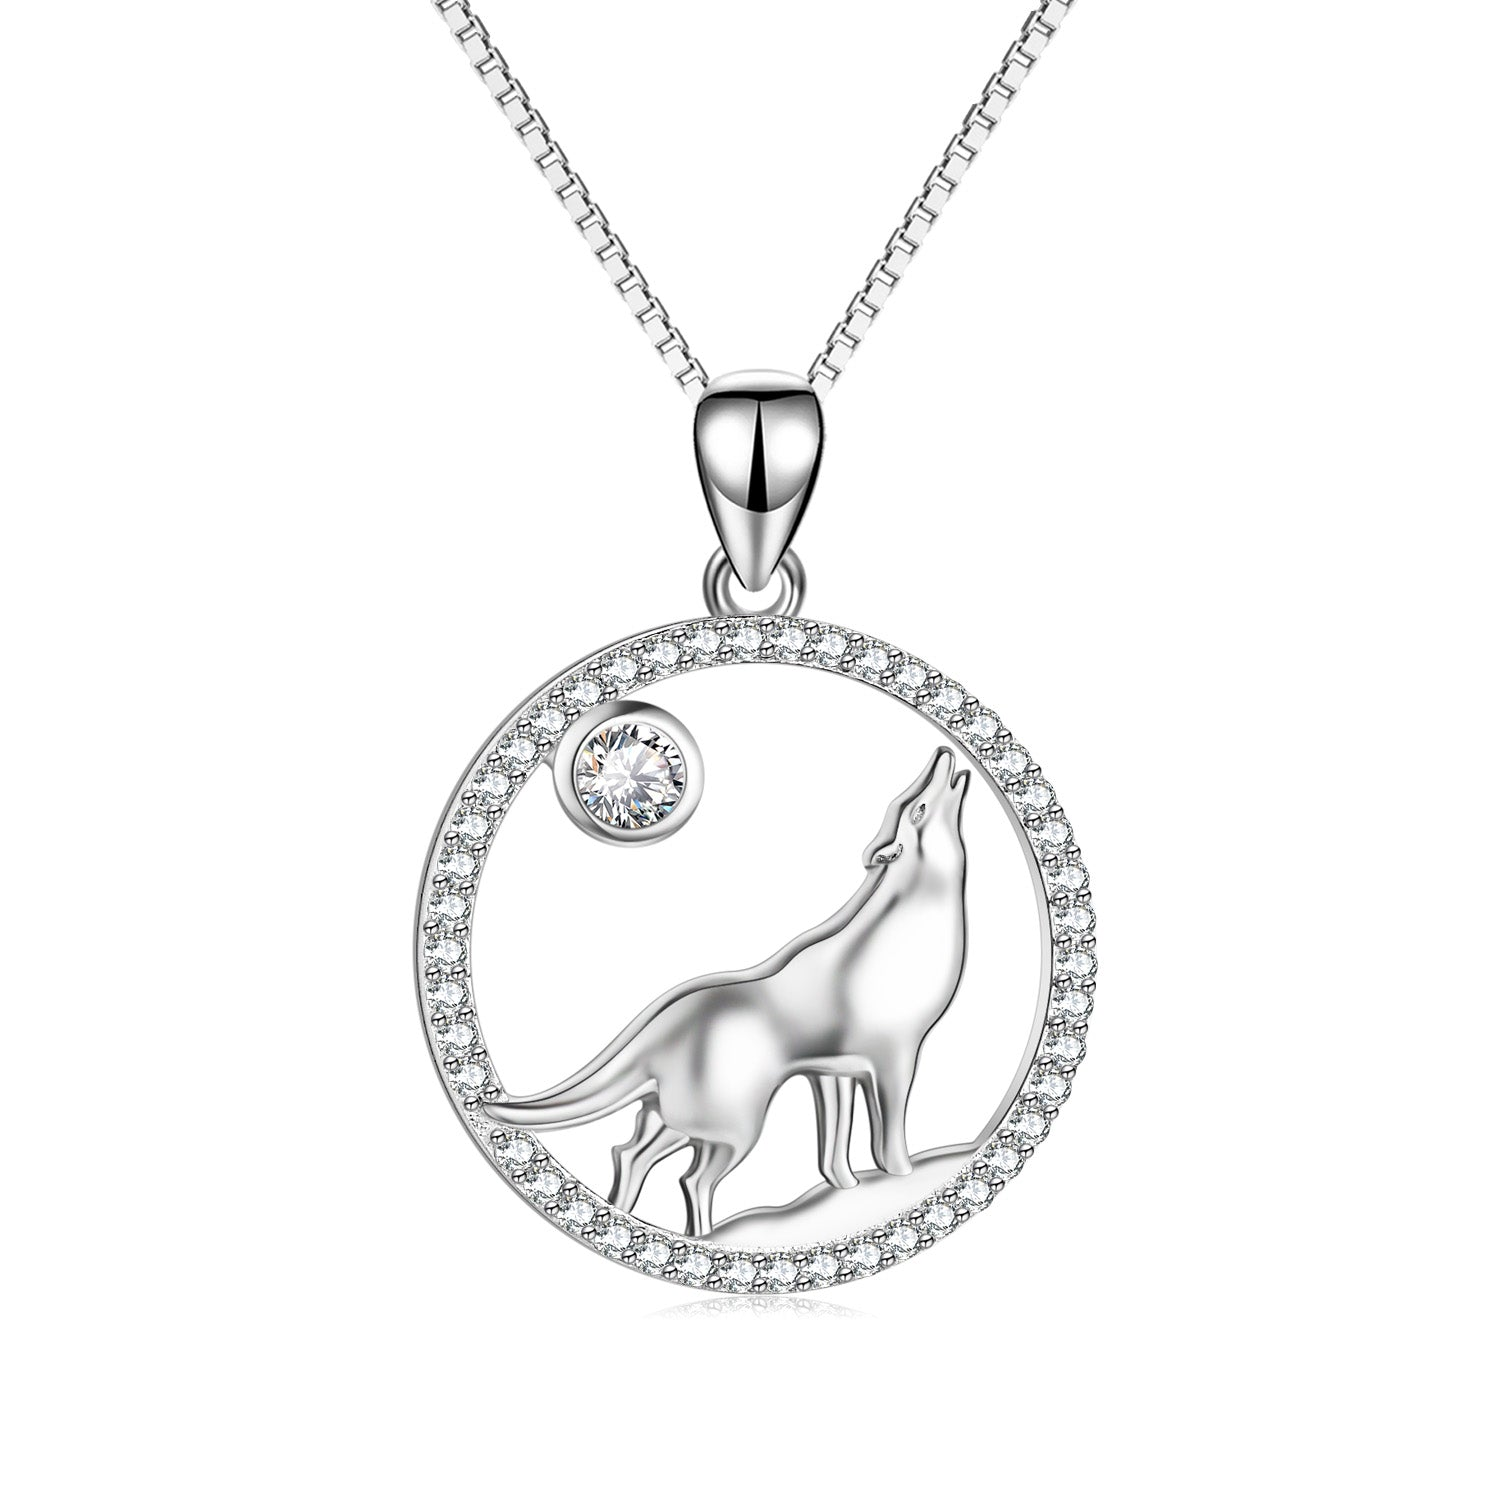 Wolf Howling Necklace Night Hillside Moon Necklace Zircon Jewelry